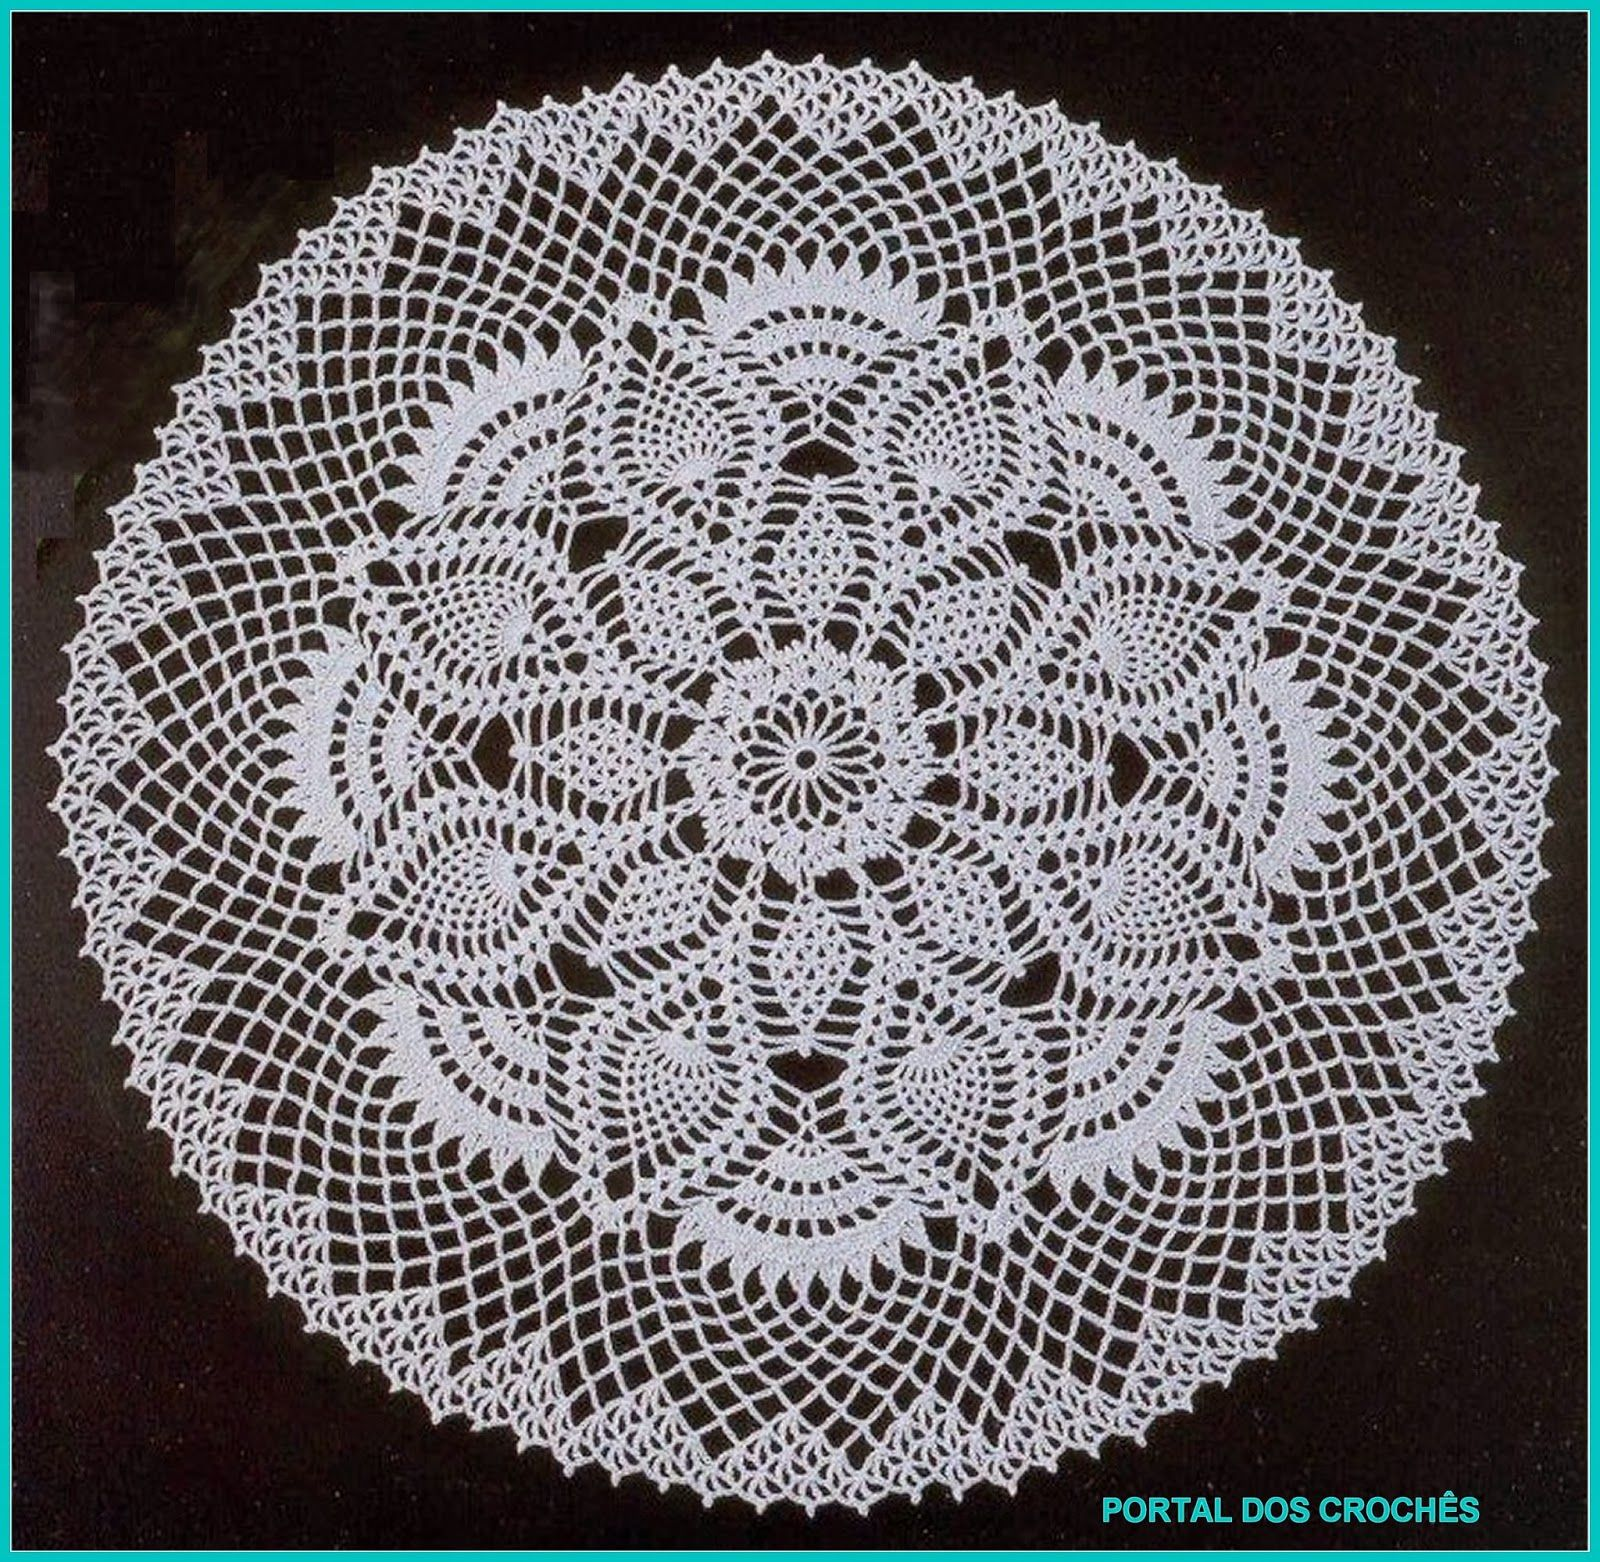 Pineapple Crochet Doily Diagram 2002 Mercury Mountaineer Wiring Centros Redondos Com Abacaxis 39s Runner